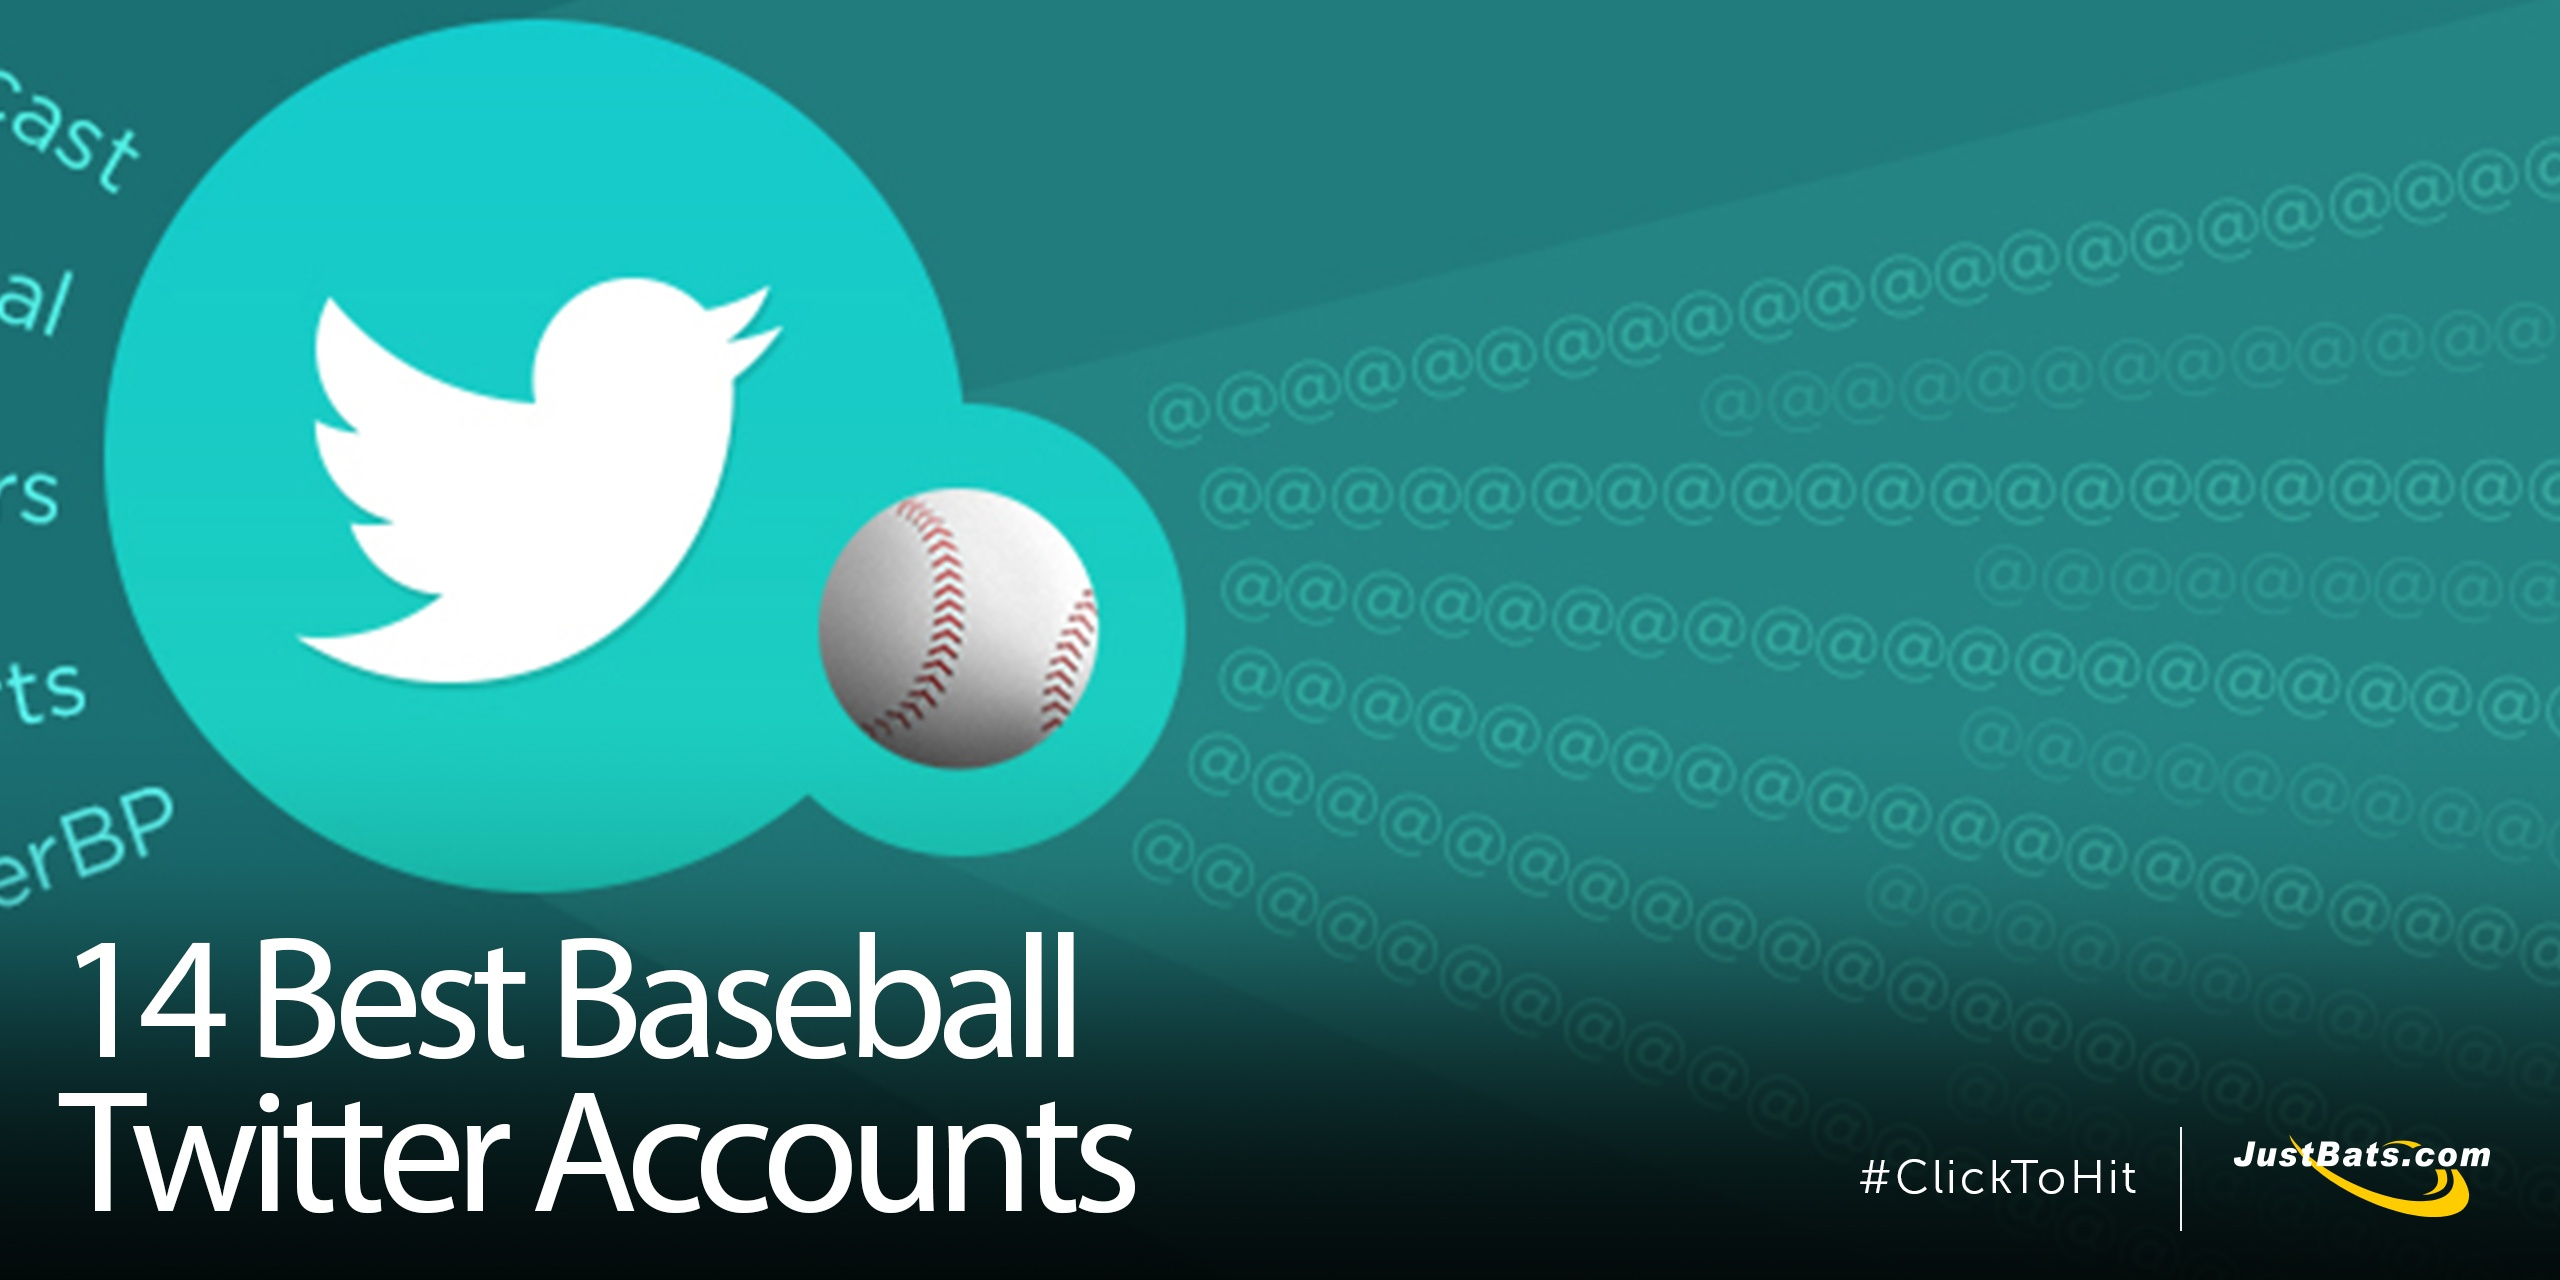 14 Best Baseball Twitter Accounts - Blog.jpg